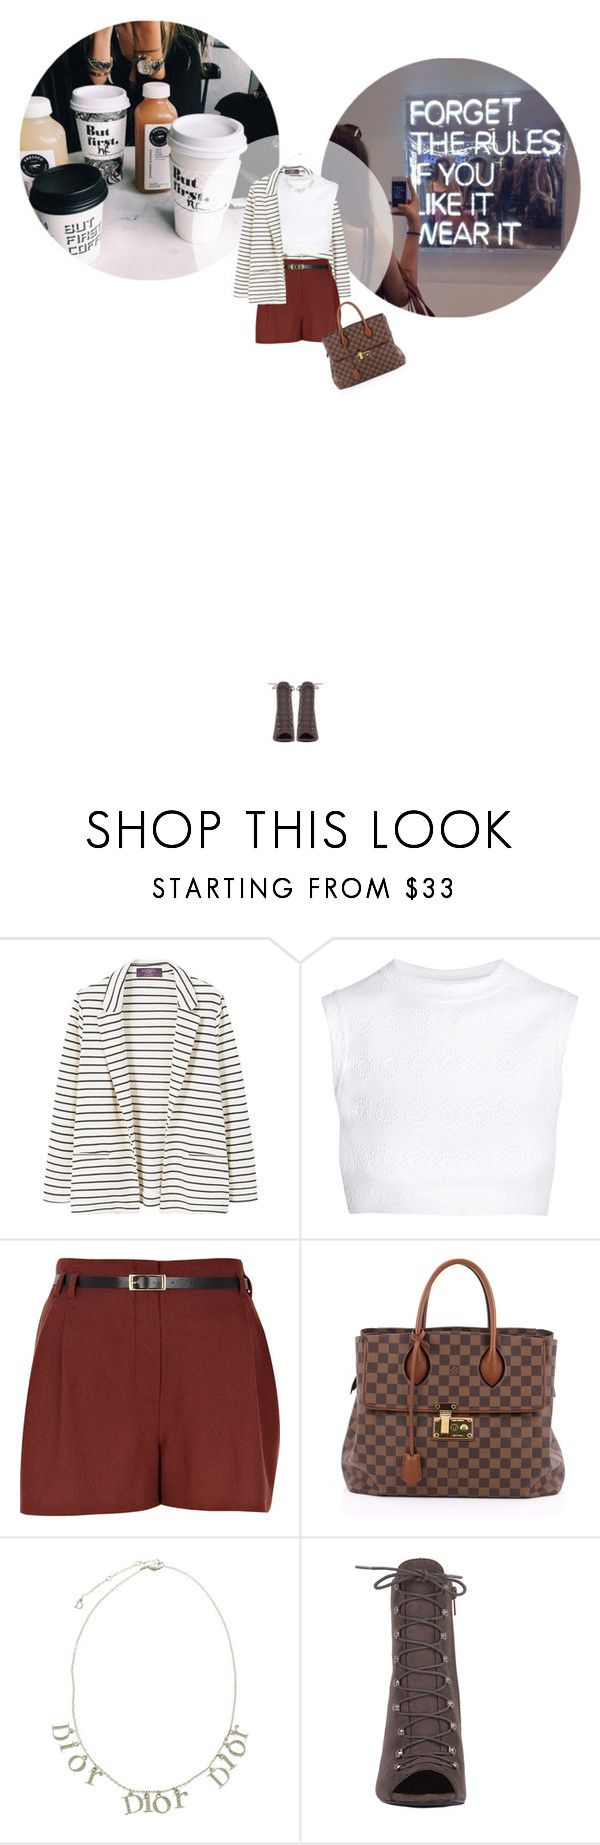 // 1332. Forget the rules. by lilymcenvy on Polyvore featuring Alaïa, MANGO, River Island, Akira Black Label, Louis Vuitton and Christian Dior